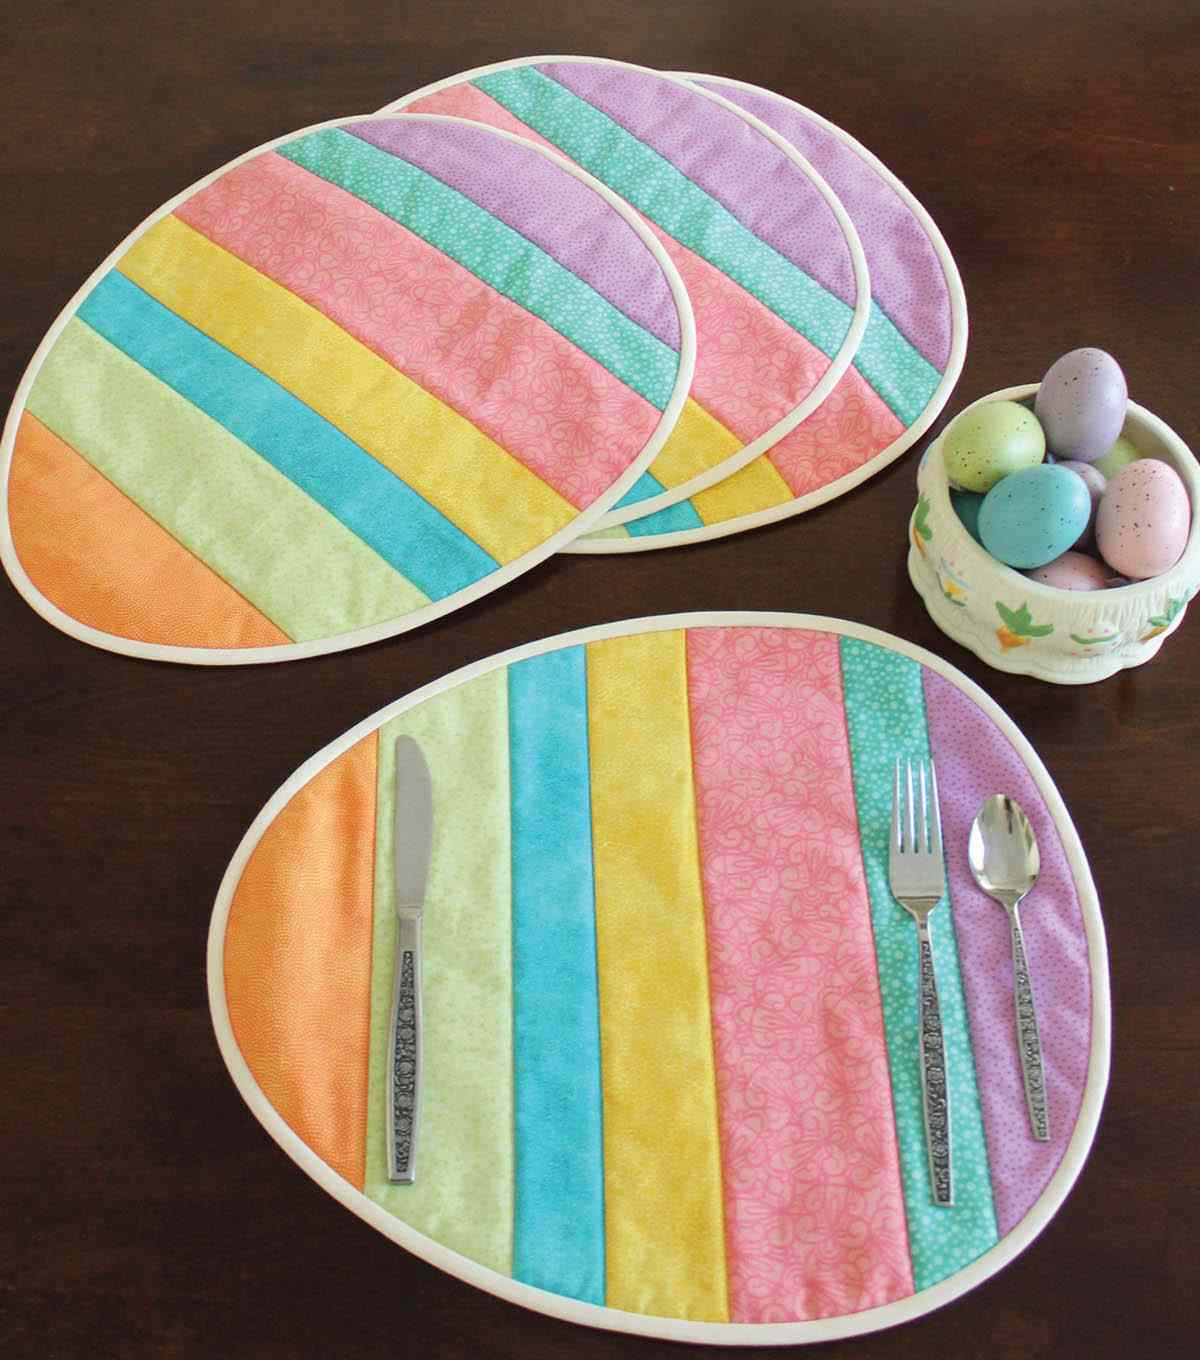 These Easter Egg Placemats Are